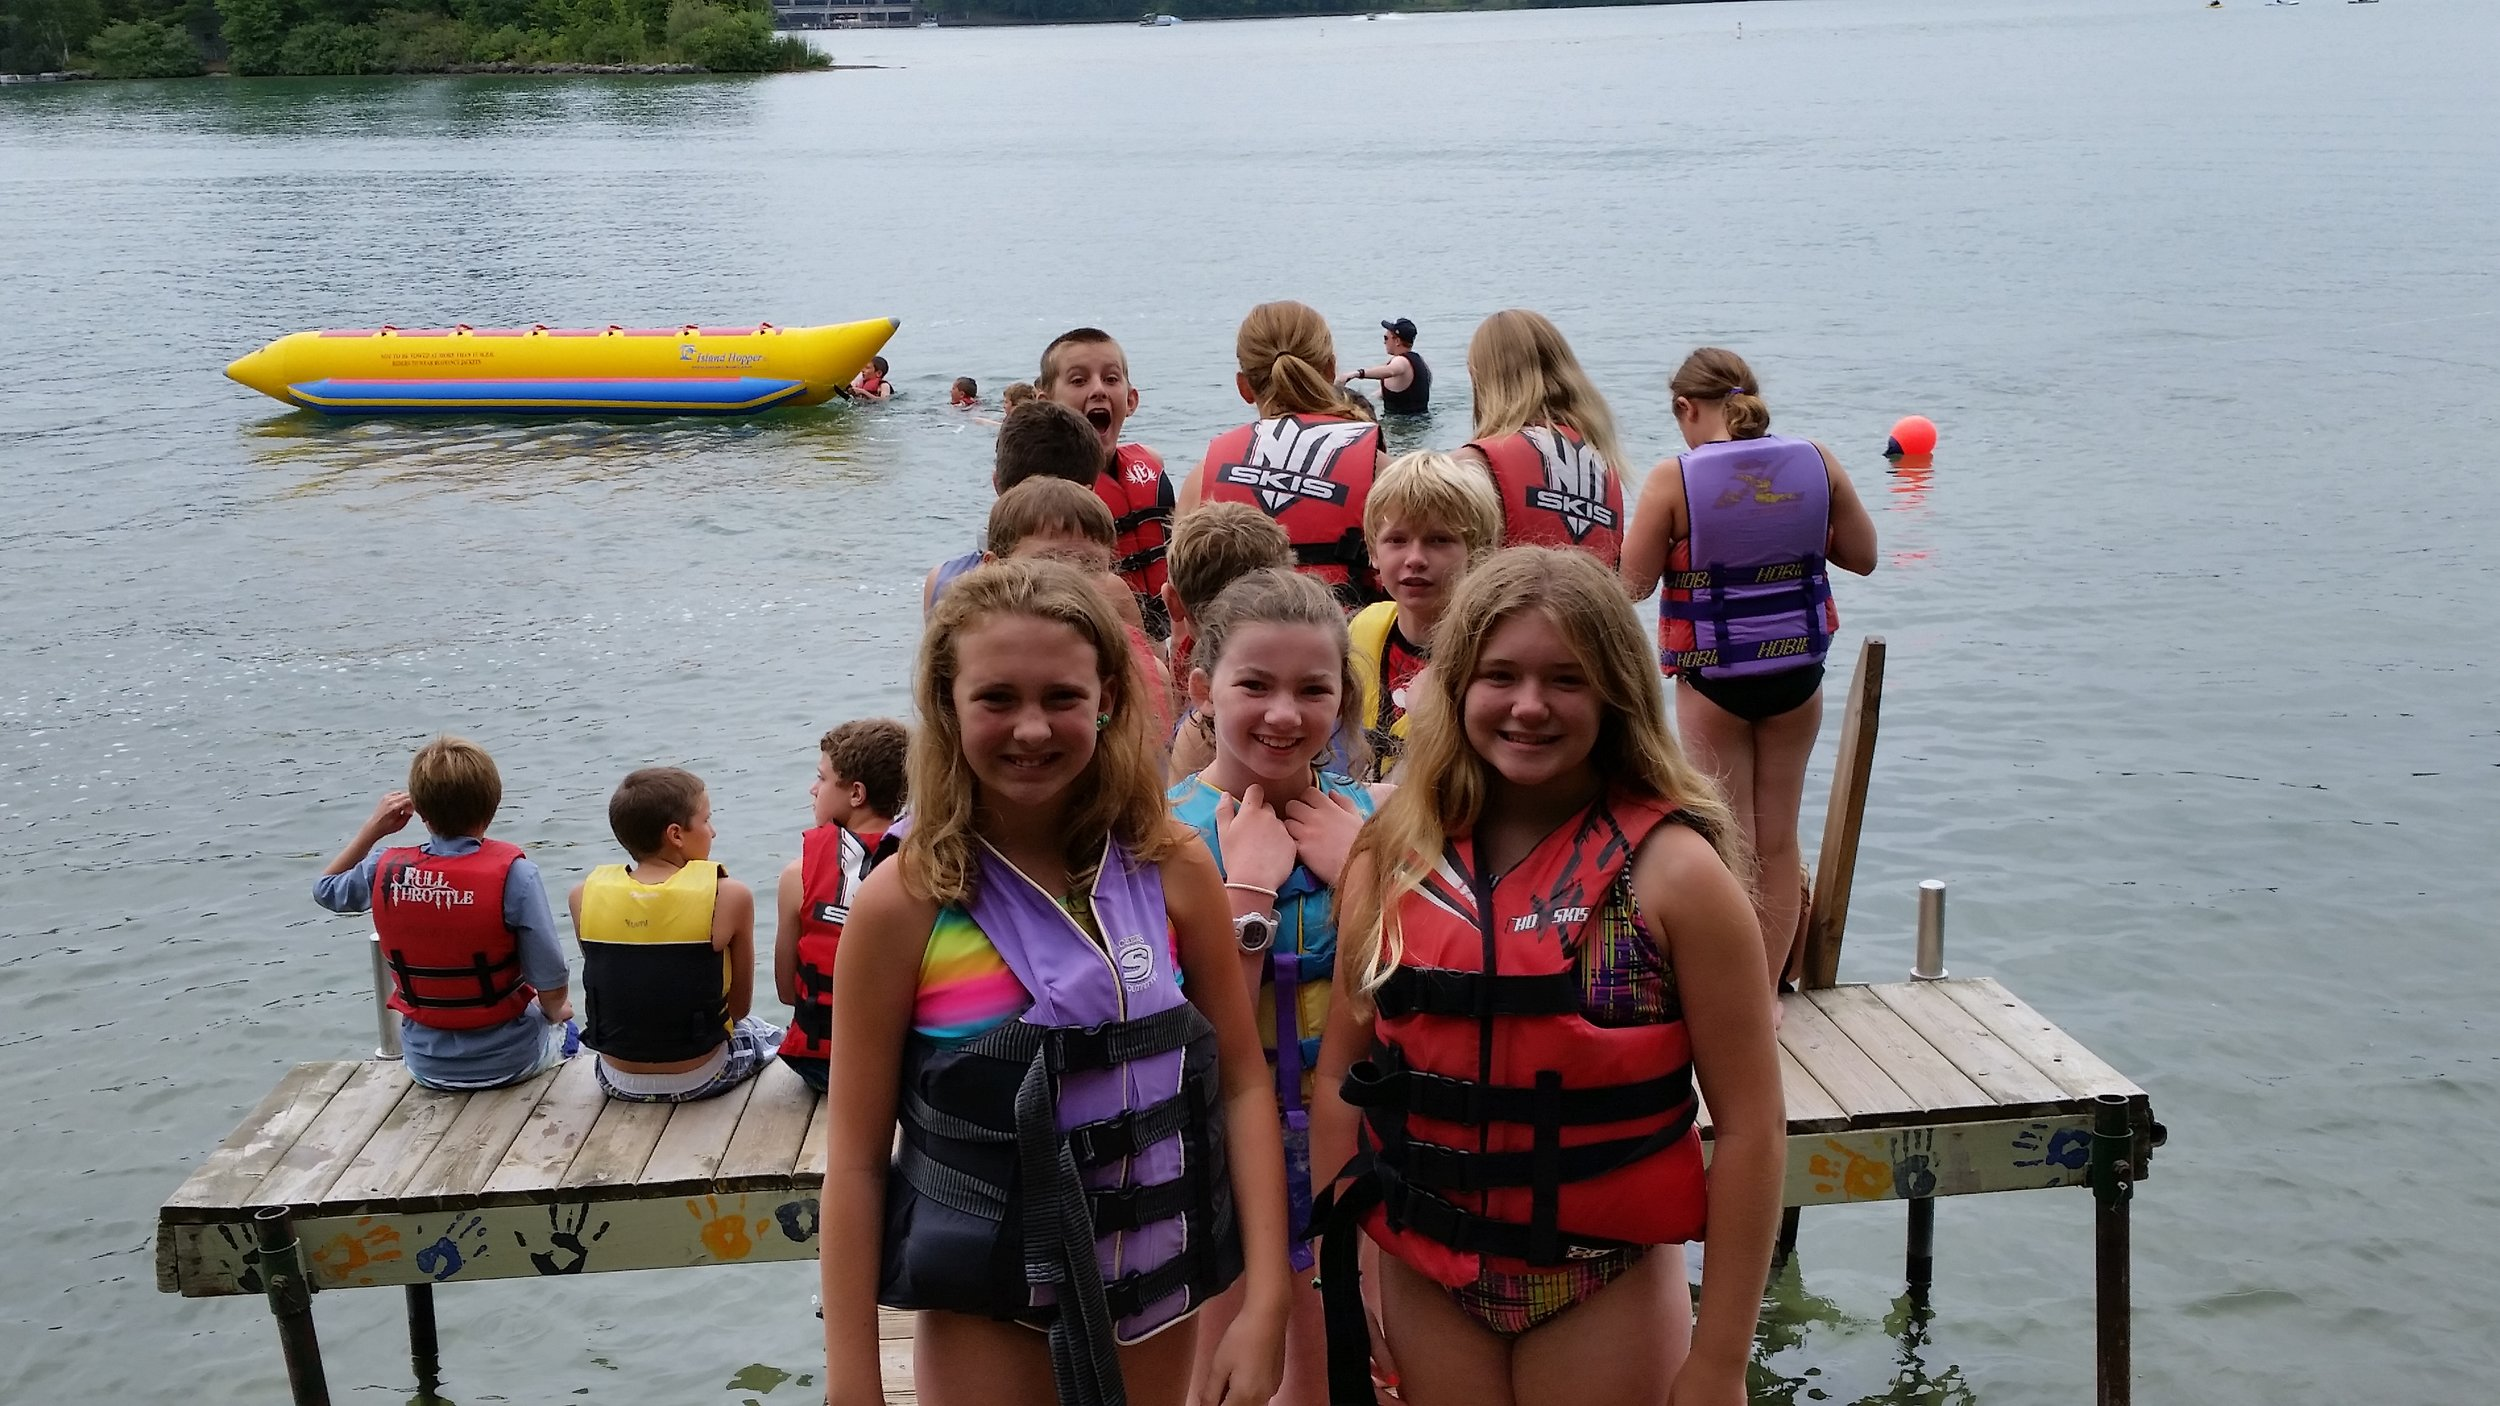 Day Camps - Youth who completed 4th or 5th grade in the spring of 2018 can explore the island, swim, go tubing, & more! This summer we are offering a girls' day camp, a boys' day camp and a co-ed day camp at Onaway, as well as a co-ed day camp at Hartman Creek State Park.